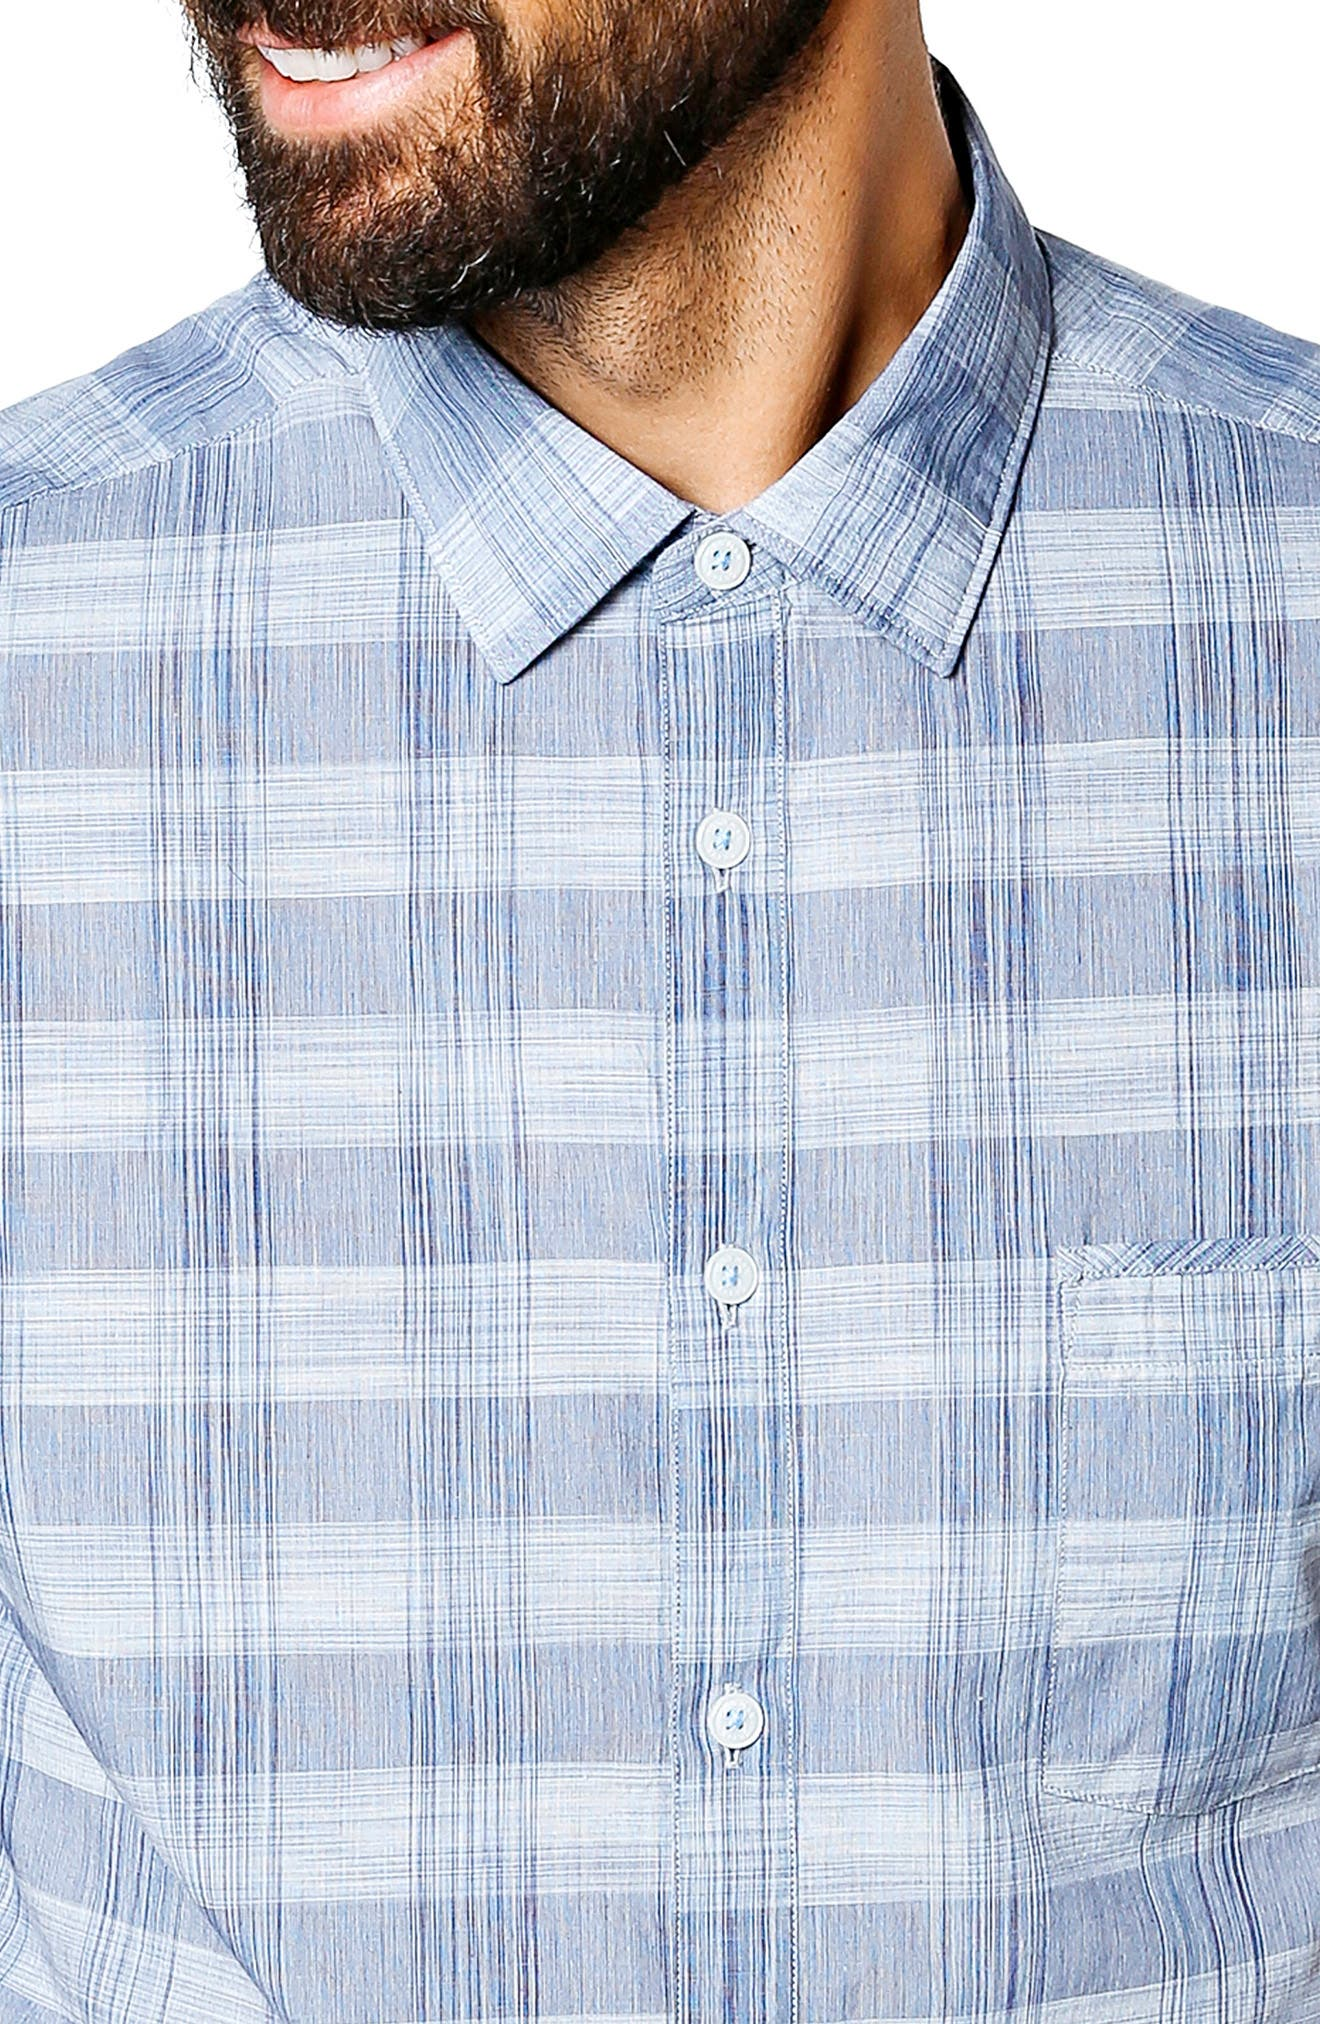 Alternate Image 4  - Good Man Brand Palisade Space Trim Fit Check Sport Shirt